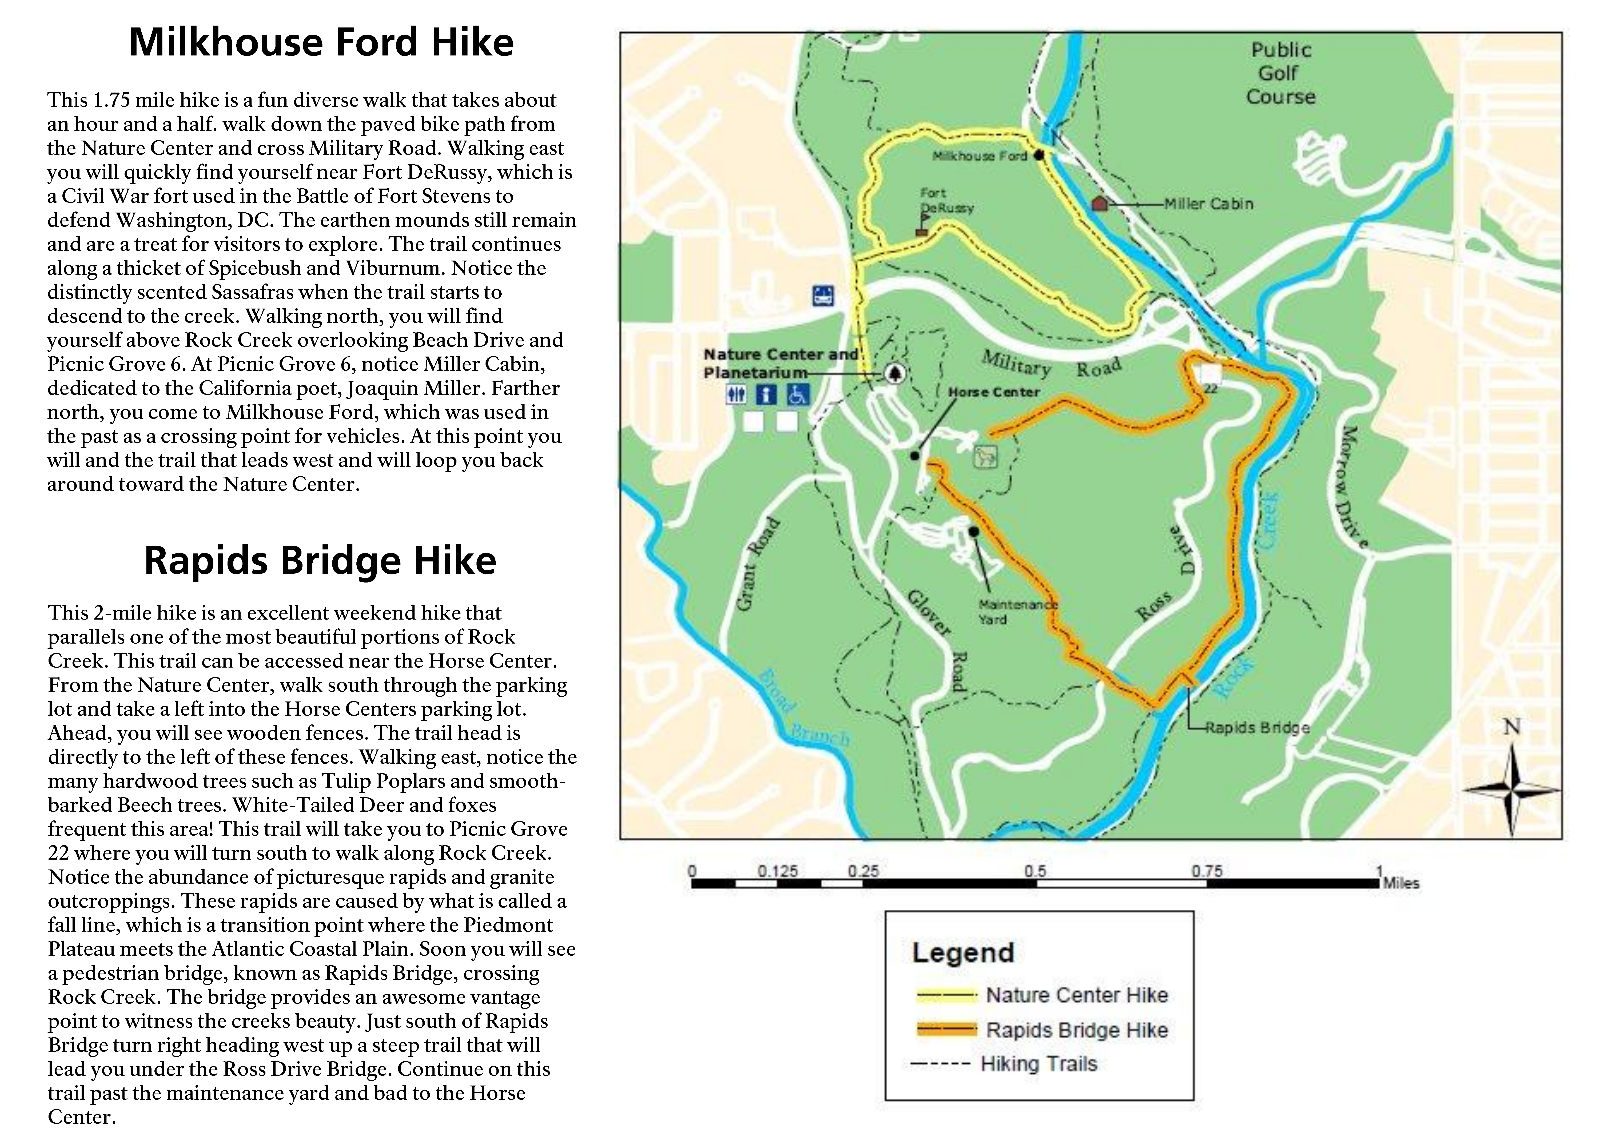 Rock Creek Maps | NPMaps.com - just free maps, period. on mill creek canyon utah map, steele creek park map, rocky gap state park map, bear creek park map, reedy creek park map, golden gate national recreation area map, brushy creek state park map, ledroit park map, tryon creek park map, forest creek park map, blues creek park map, crandon park map, brush creek park map, big creek state park iowa map, keystone state park map, saddle creek park map, ford's theatre map, valley of fire park map, gambrill state park trail map, cleveland park map,